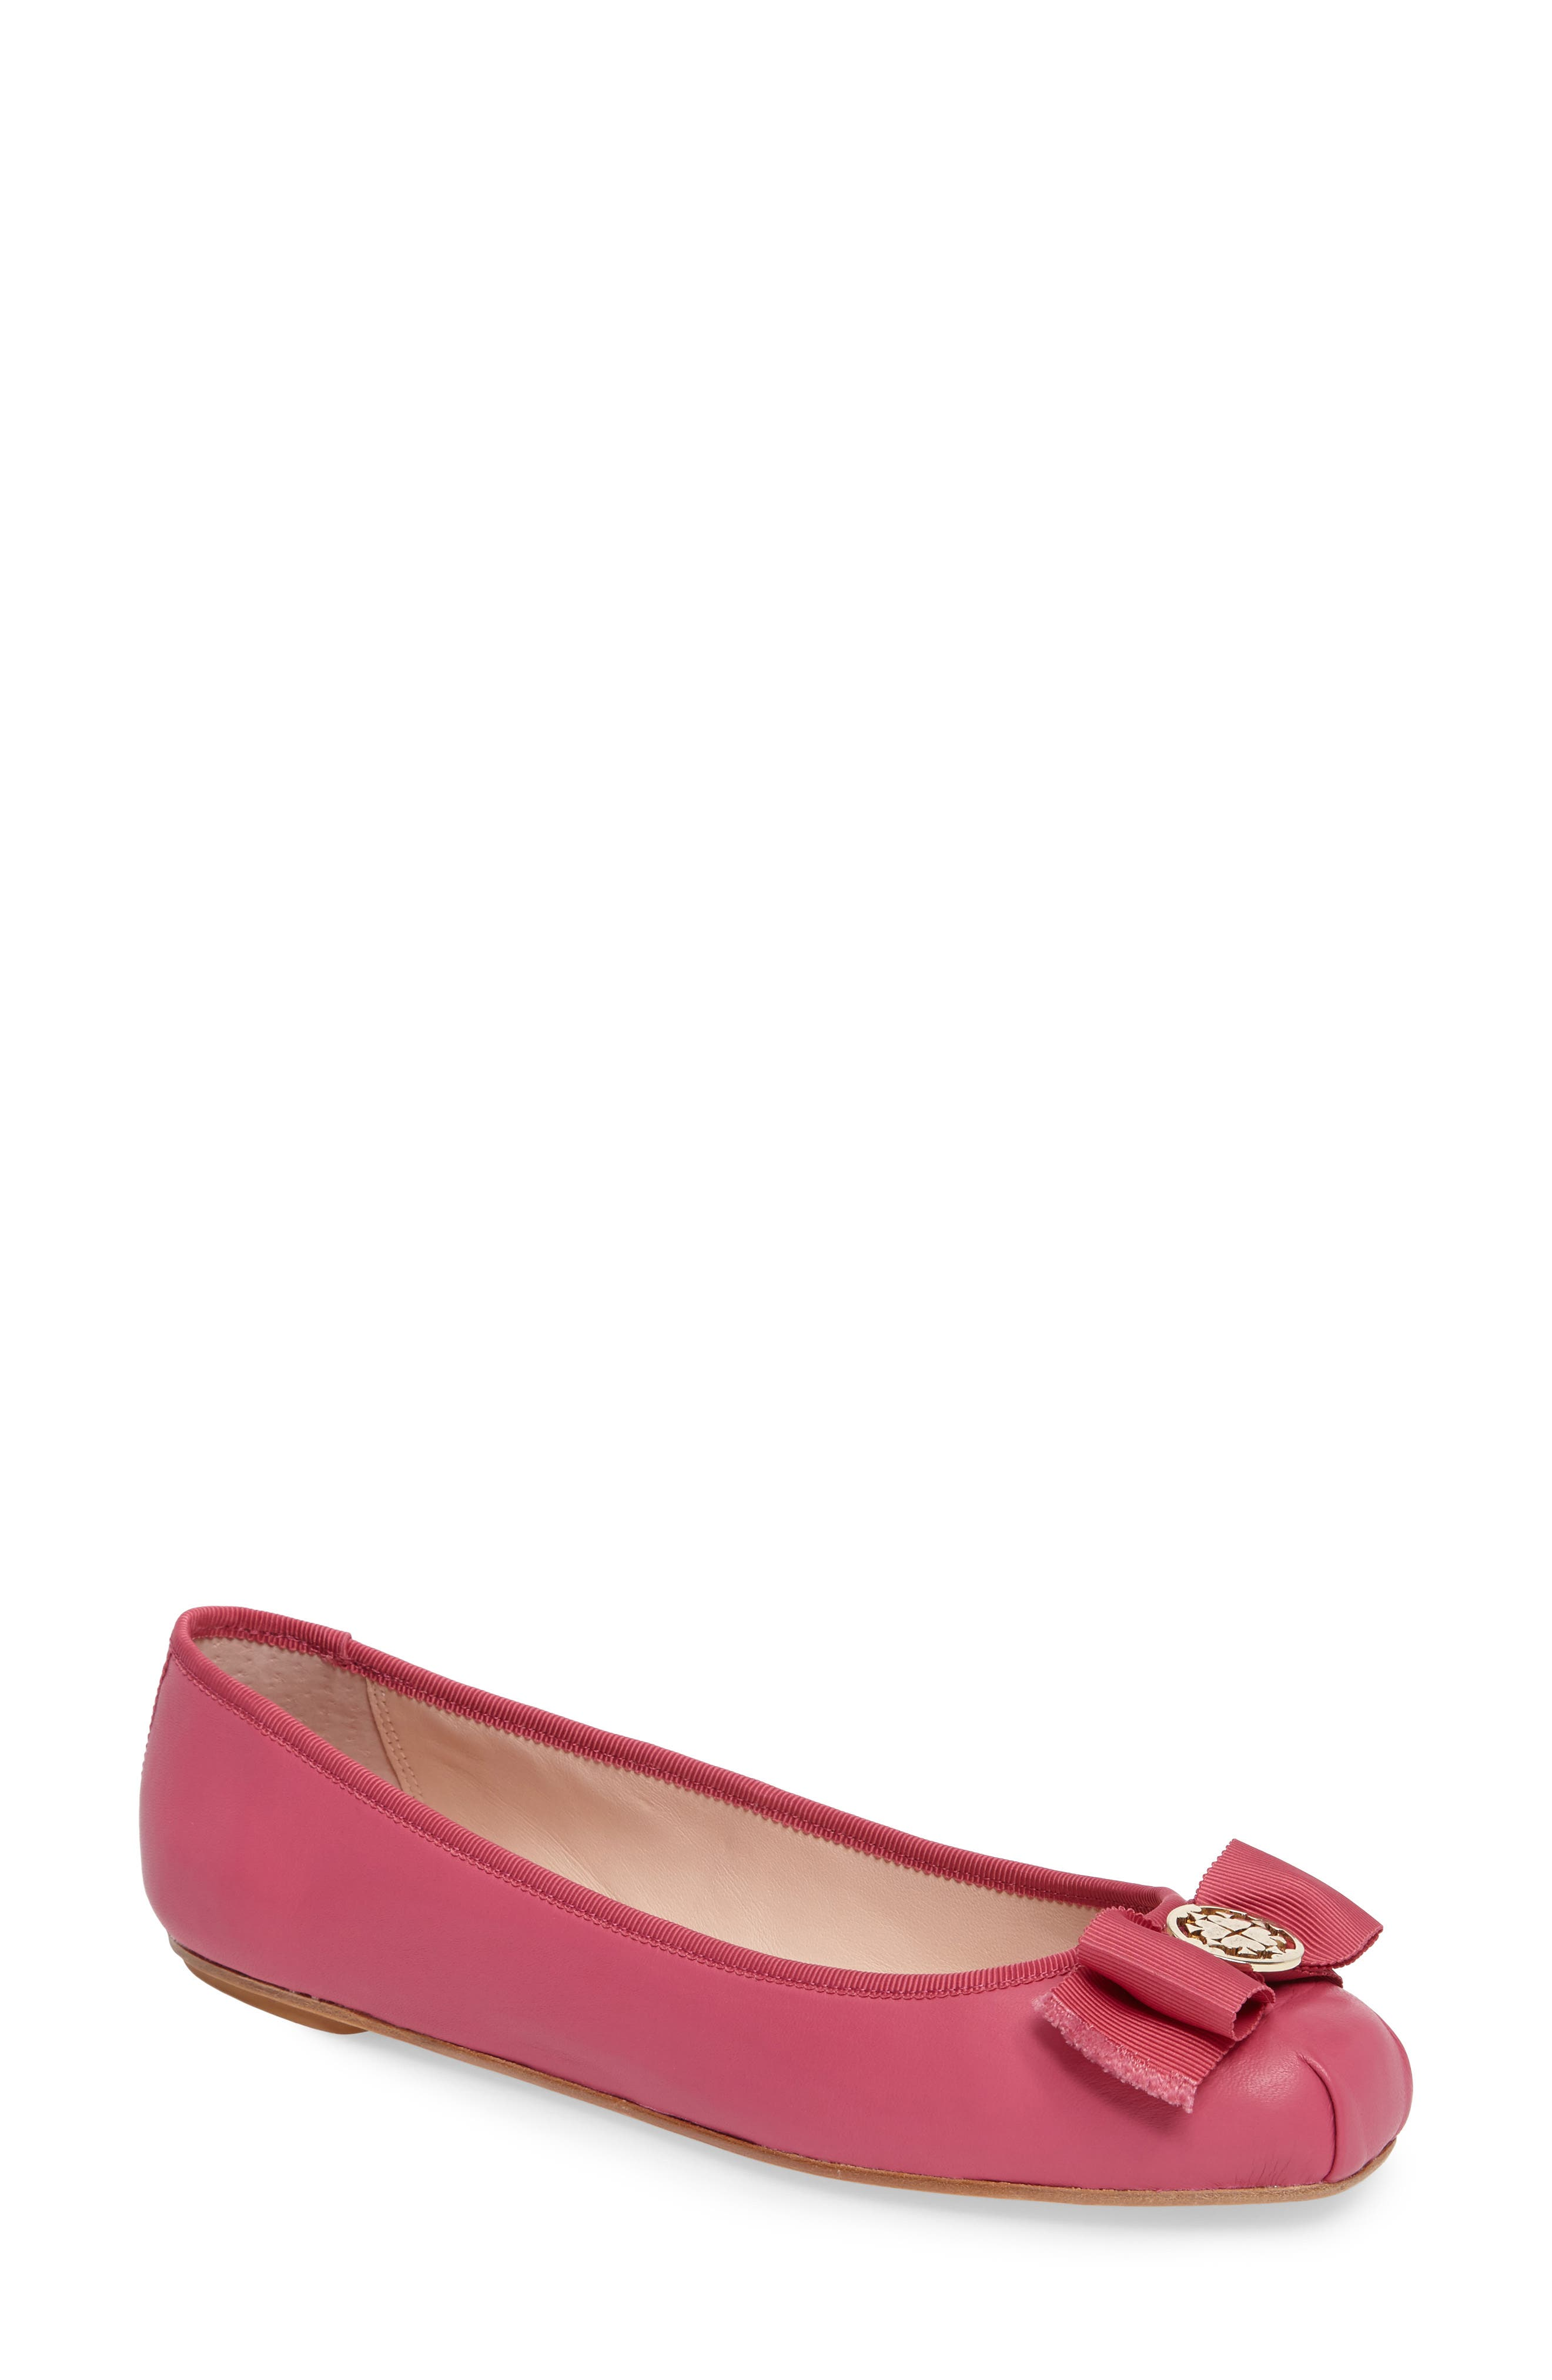 kate spade new york fontana too ballet flat (Women)